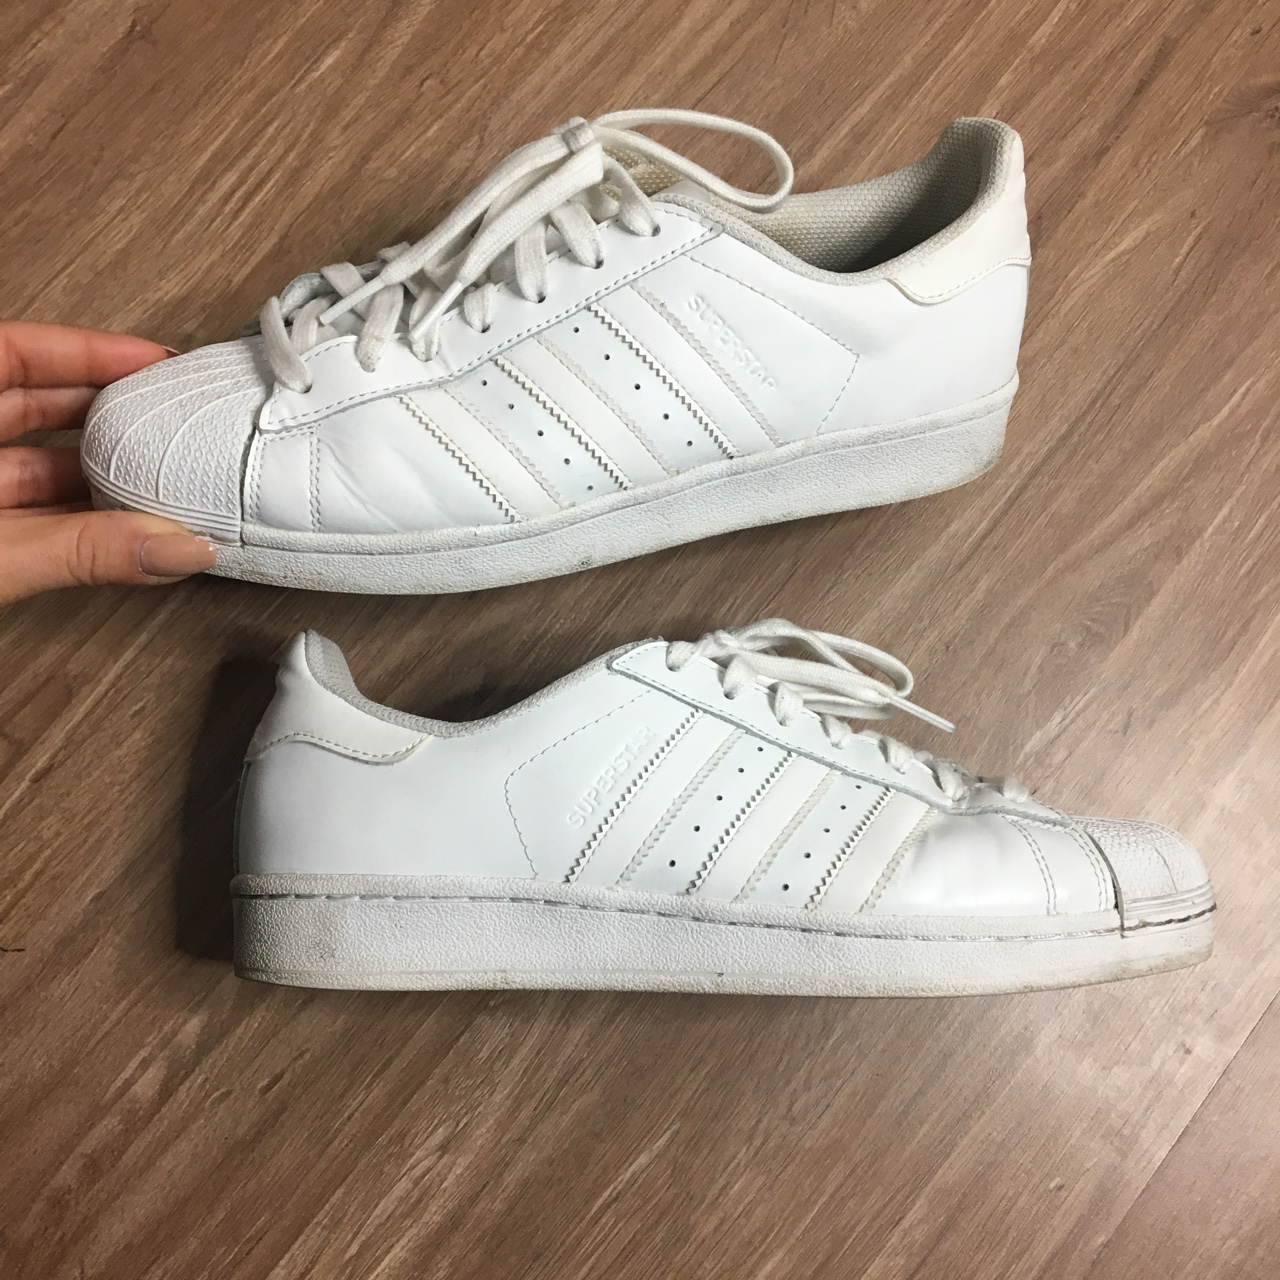 Adidas superstar 41 1/3 - Depop